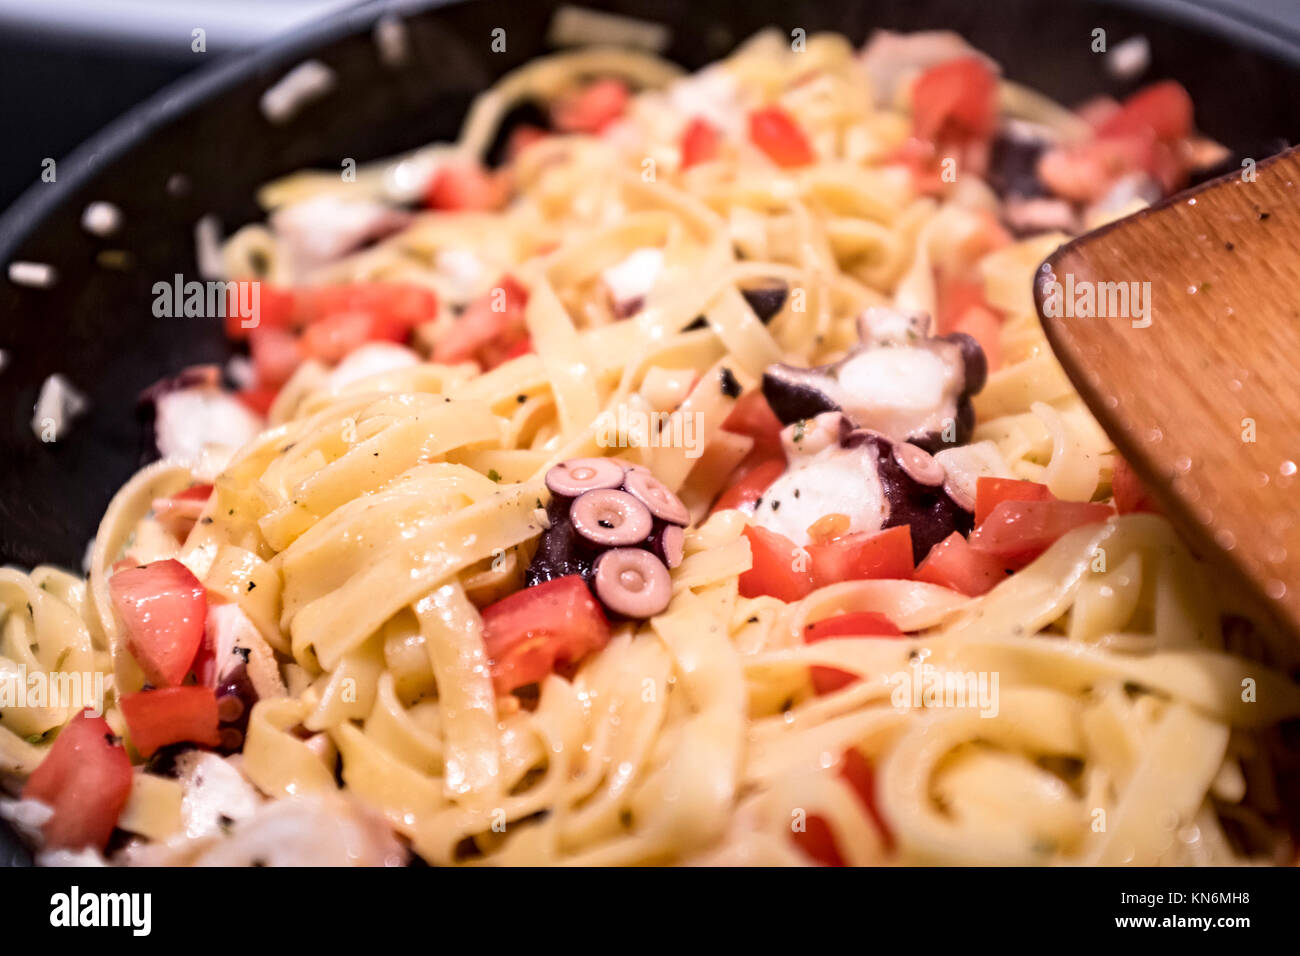 Seafood pasta with octopus - Stock Image